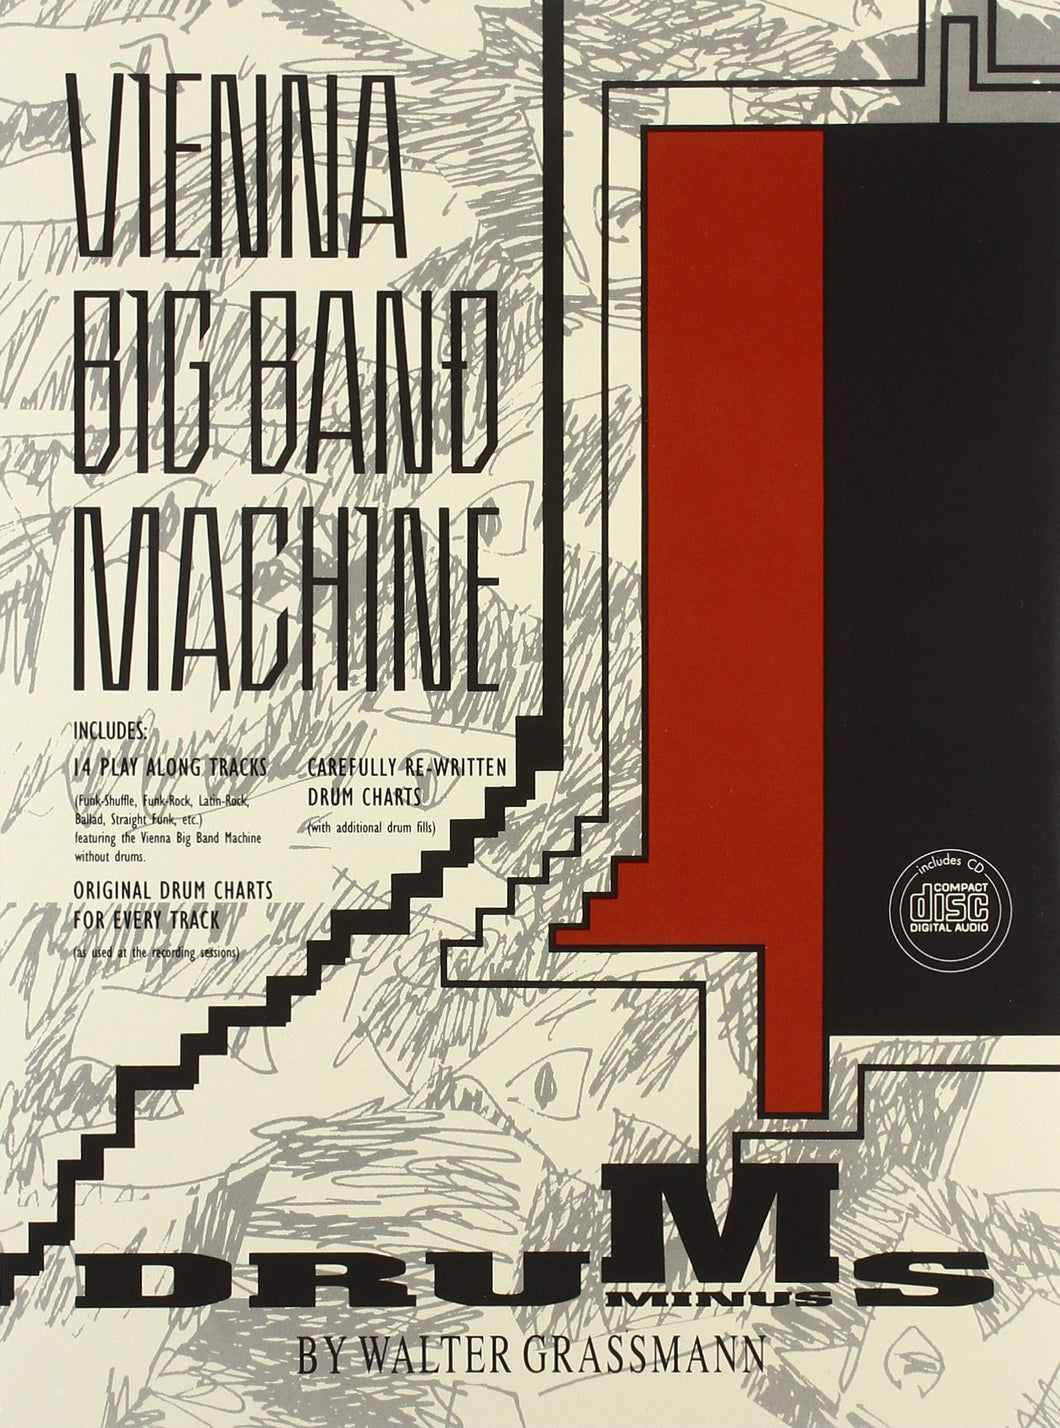 Say It Straight - Vienna Big Band Machine - Collection of Drum Transcriptions / Drum Sheet Music - Alfred Music VBBMMD